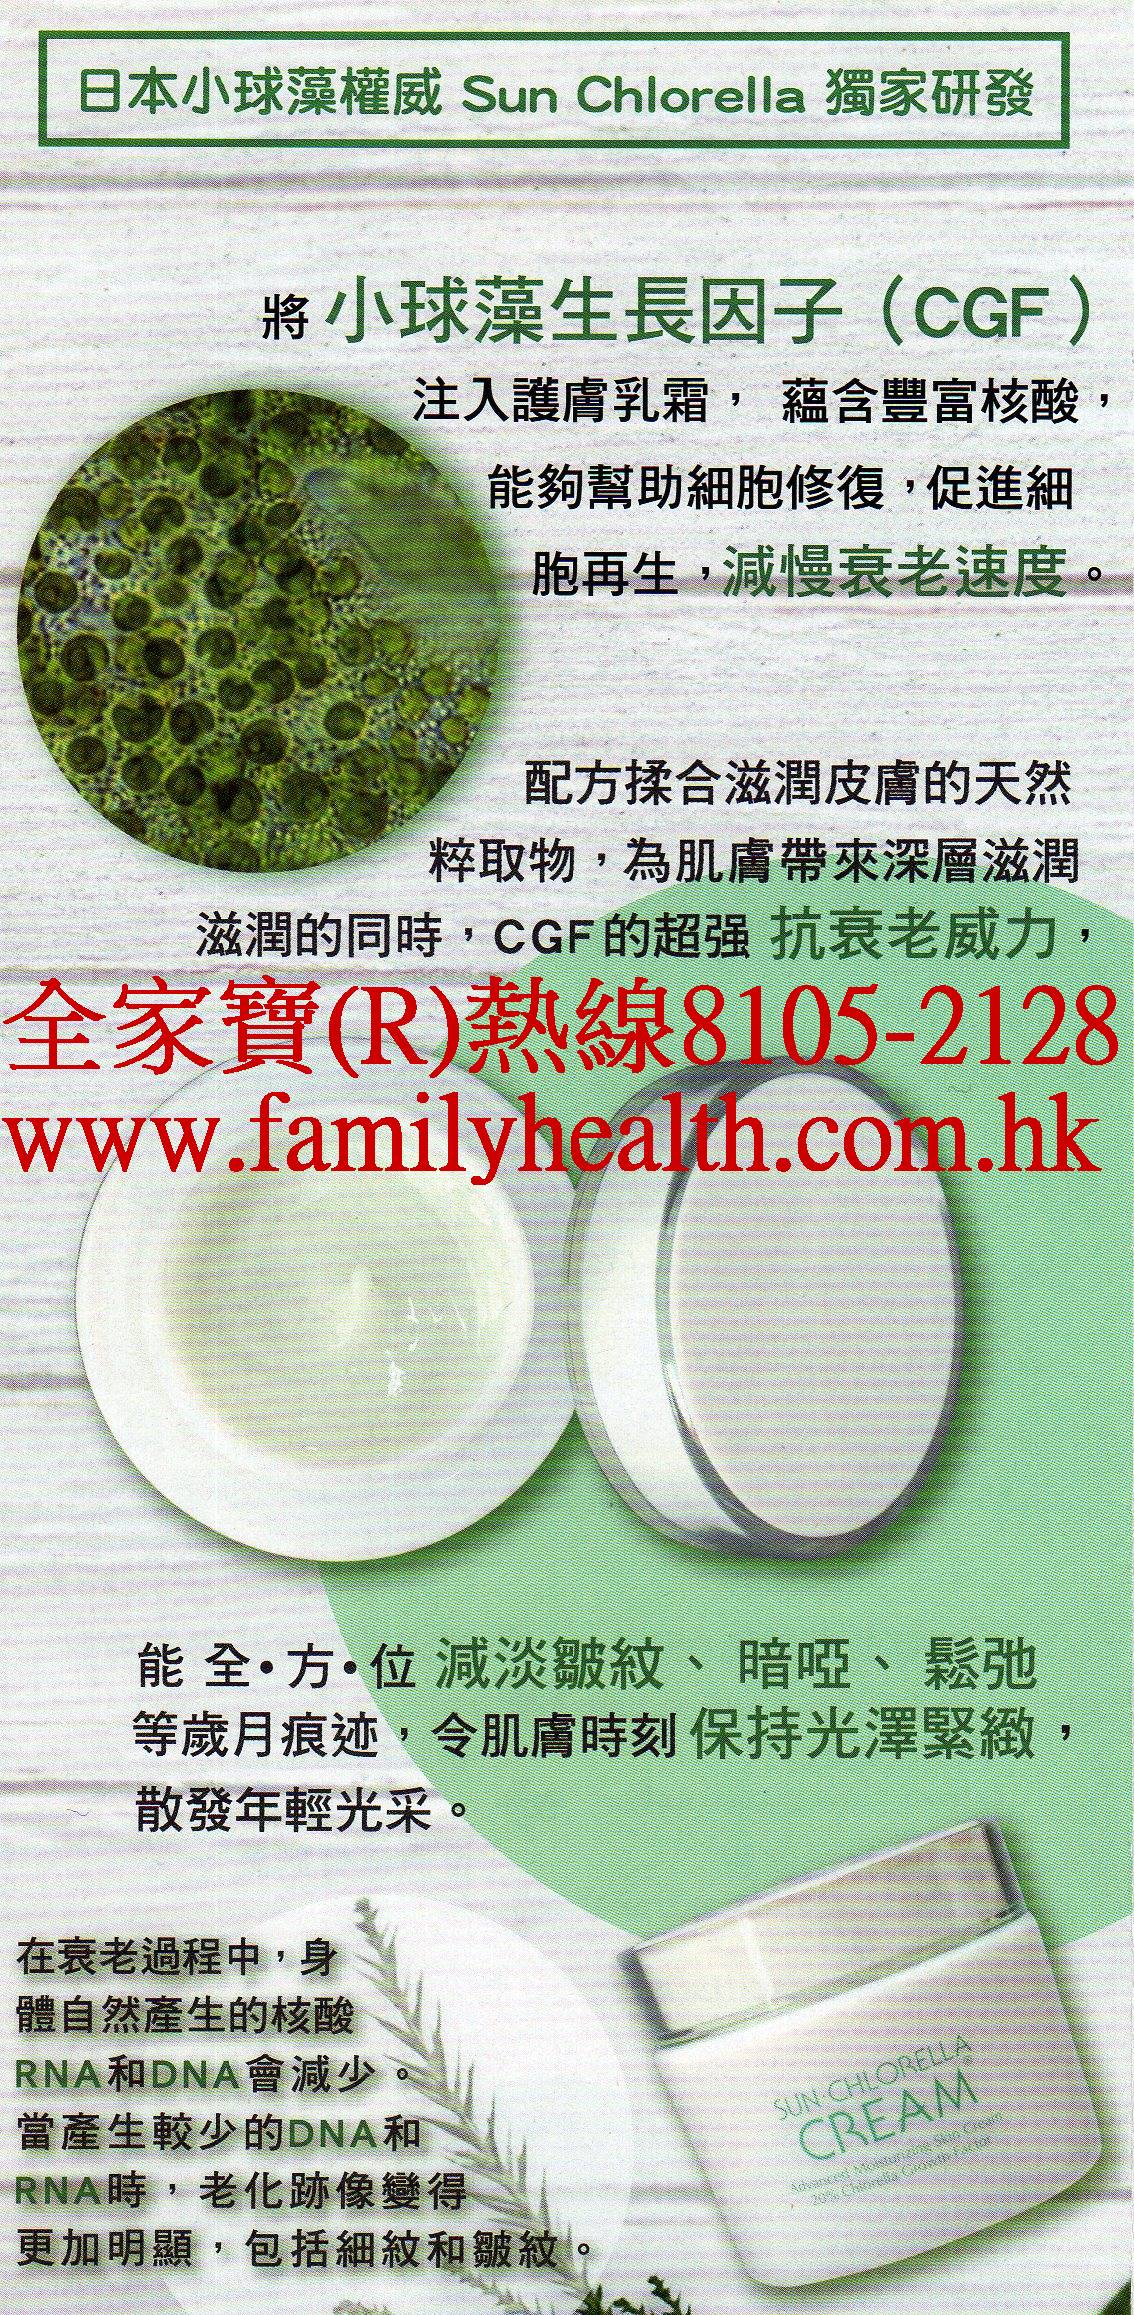 http://www.familyhealth.com.hk/files/full/1033_3.jpg